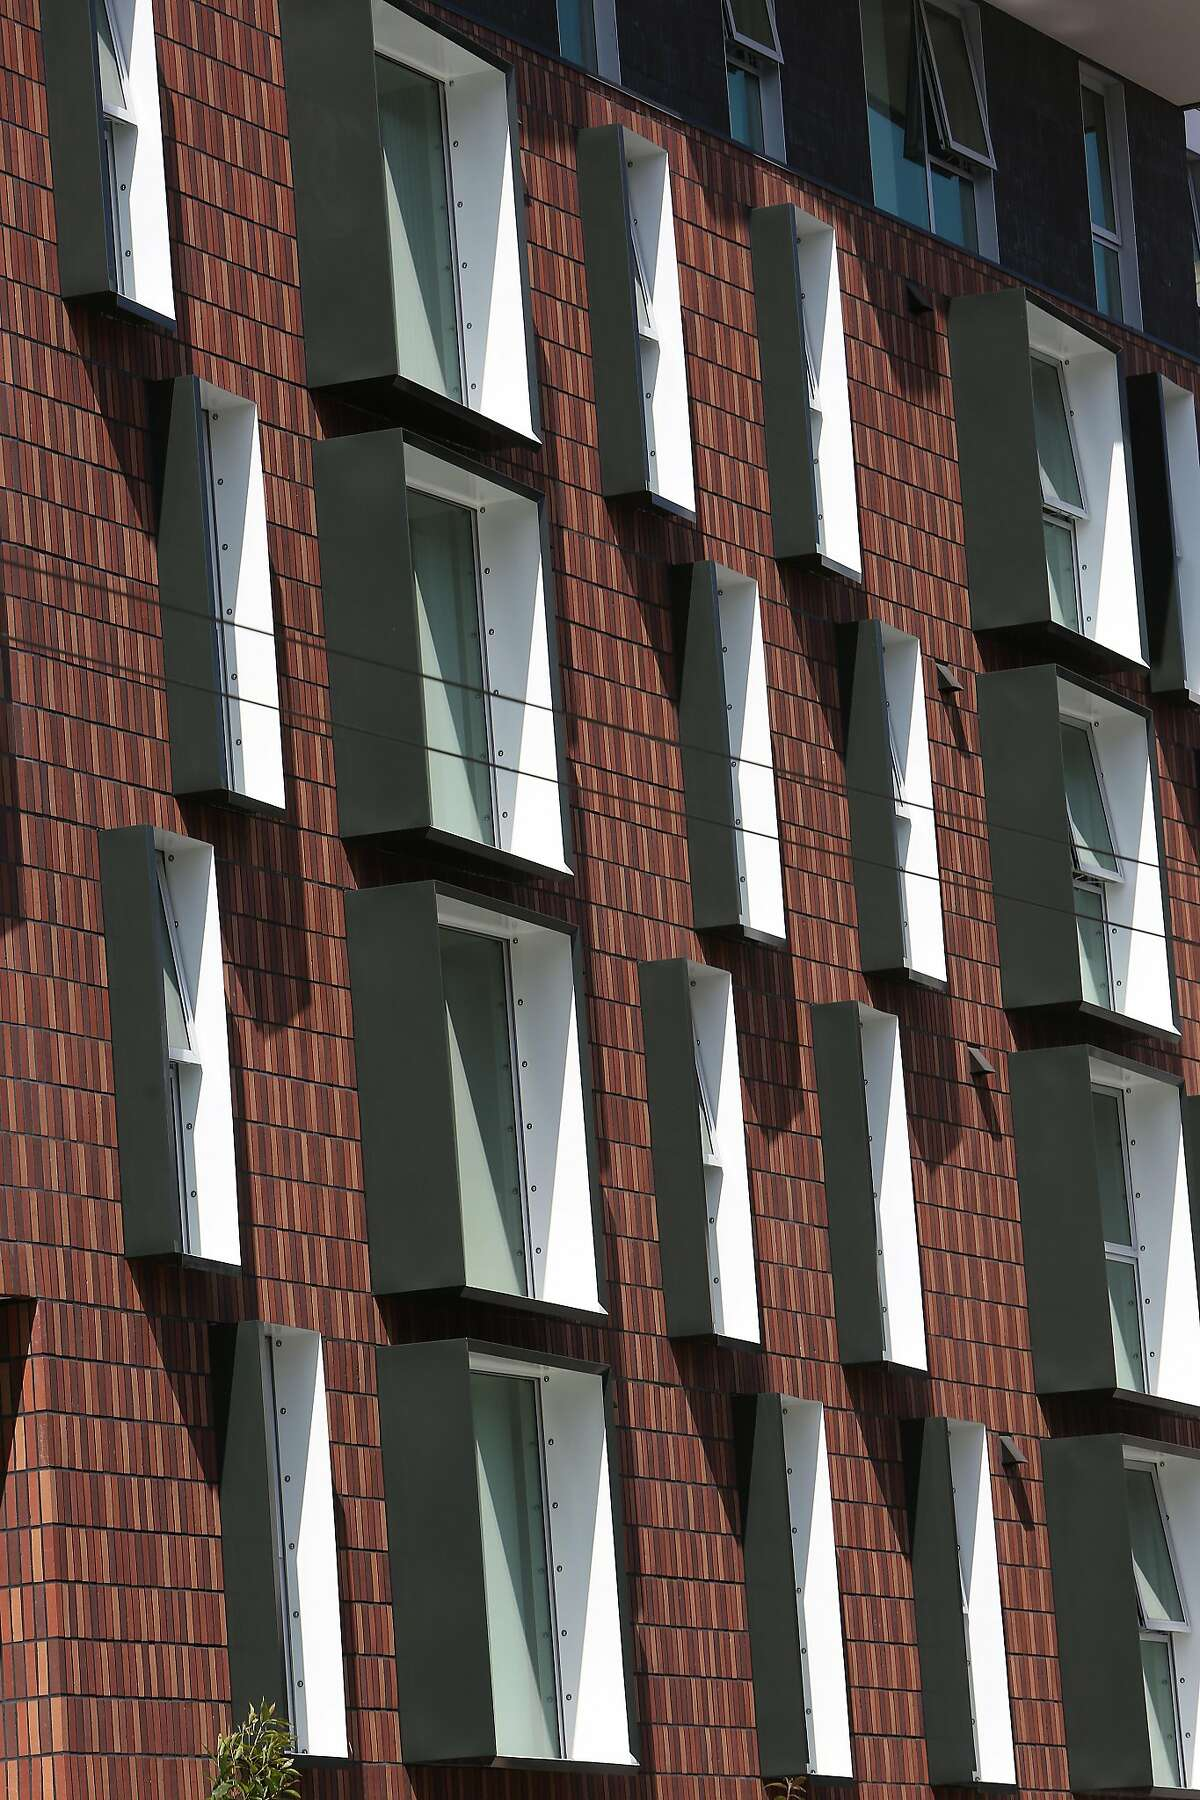 Angled window trims form a geometric pattern at 222 Taylor Street on Thursday, August 8, 2019 in San Francisco, Calif.